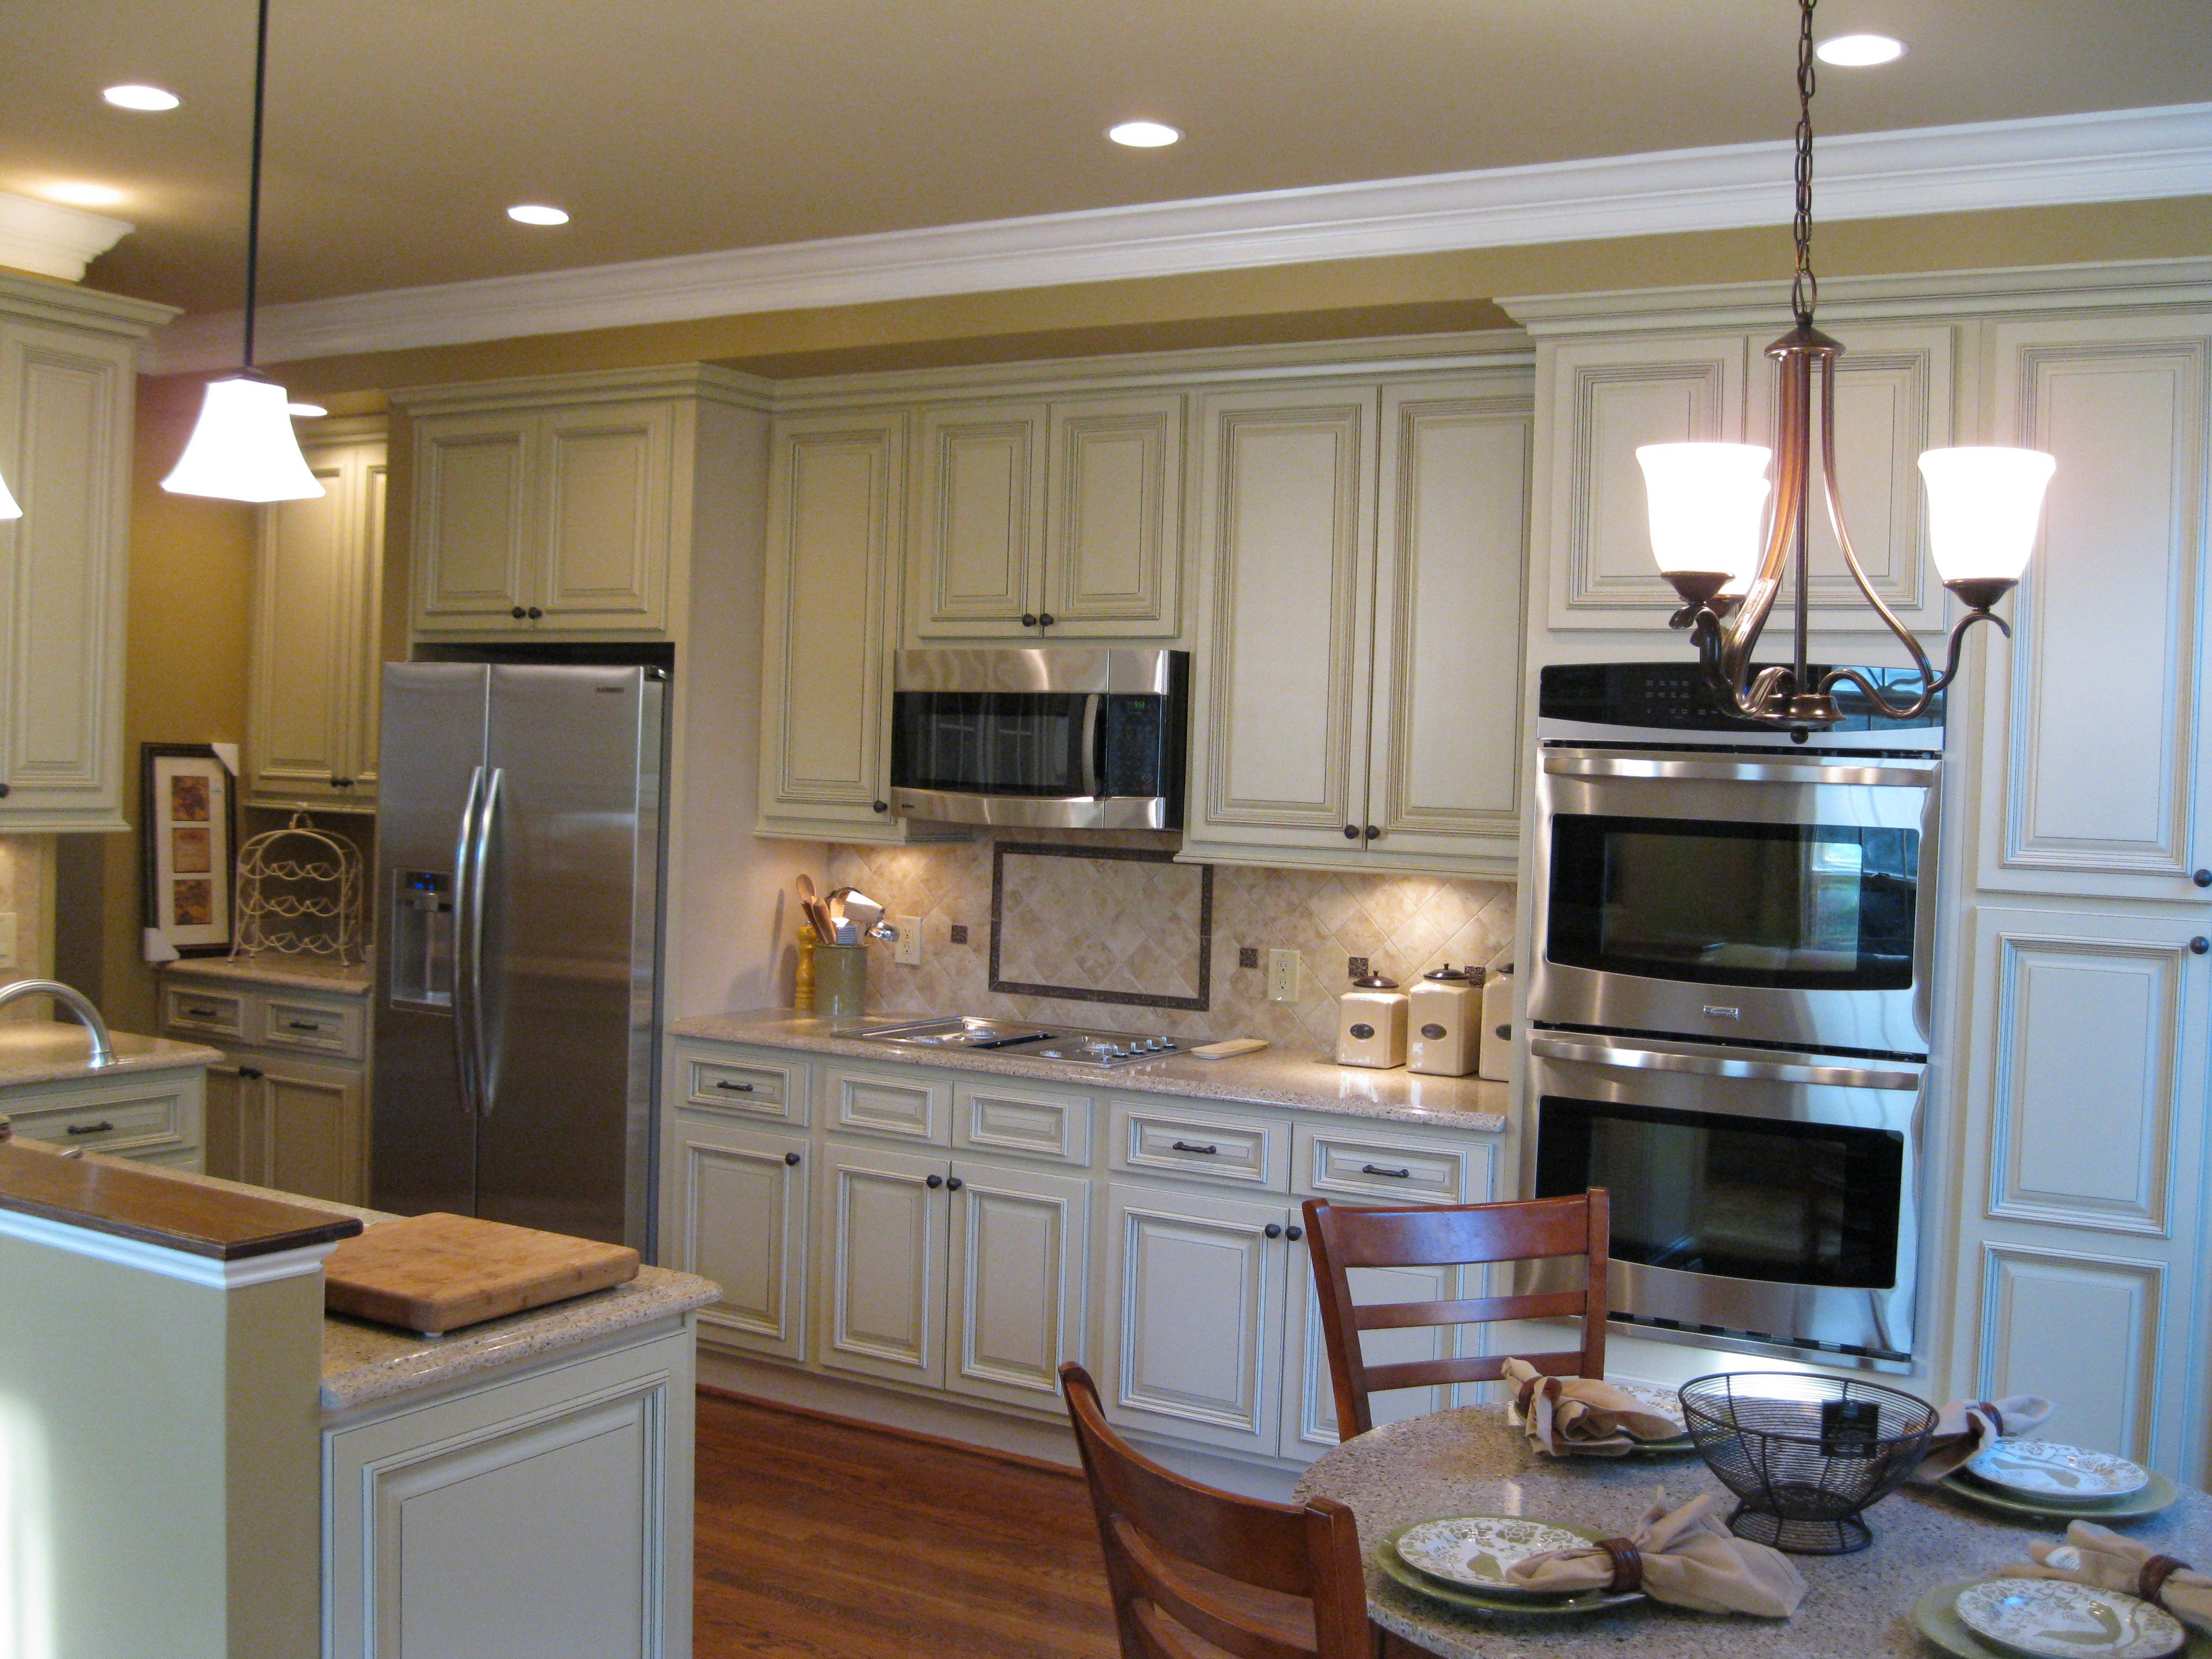 Heritage White Cabinets With Quartz Counter Top Countertops Cheap Countertops Diy Countertops